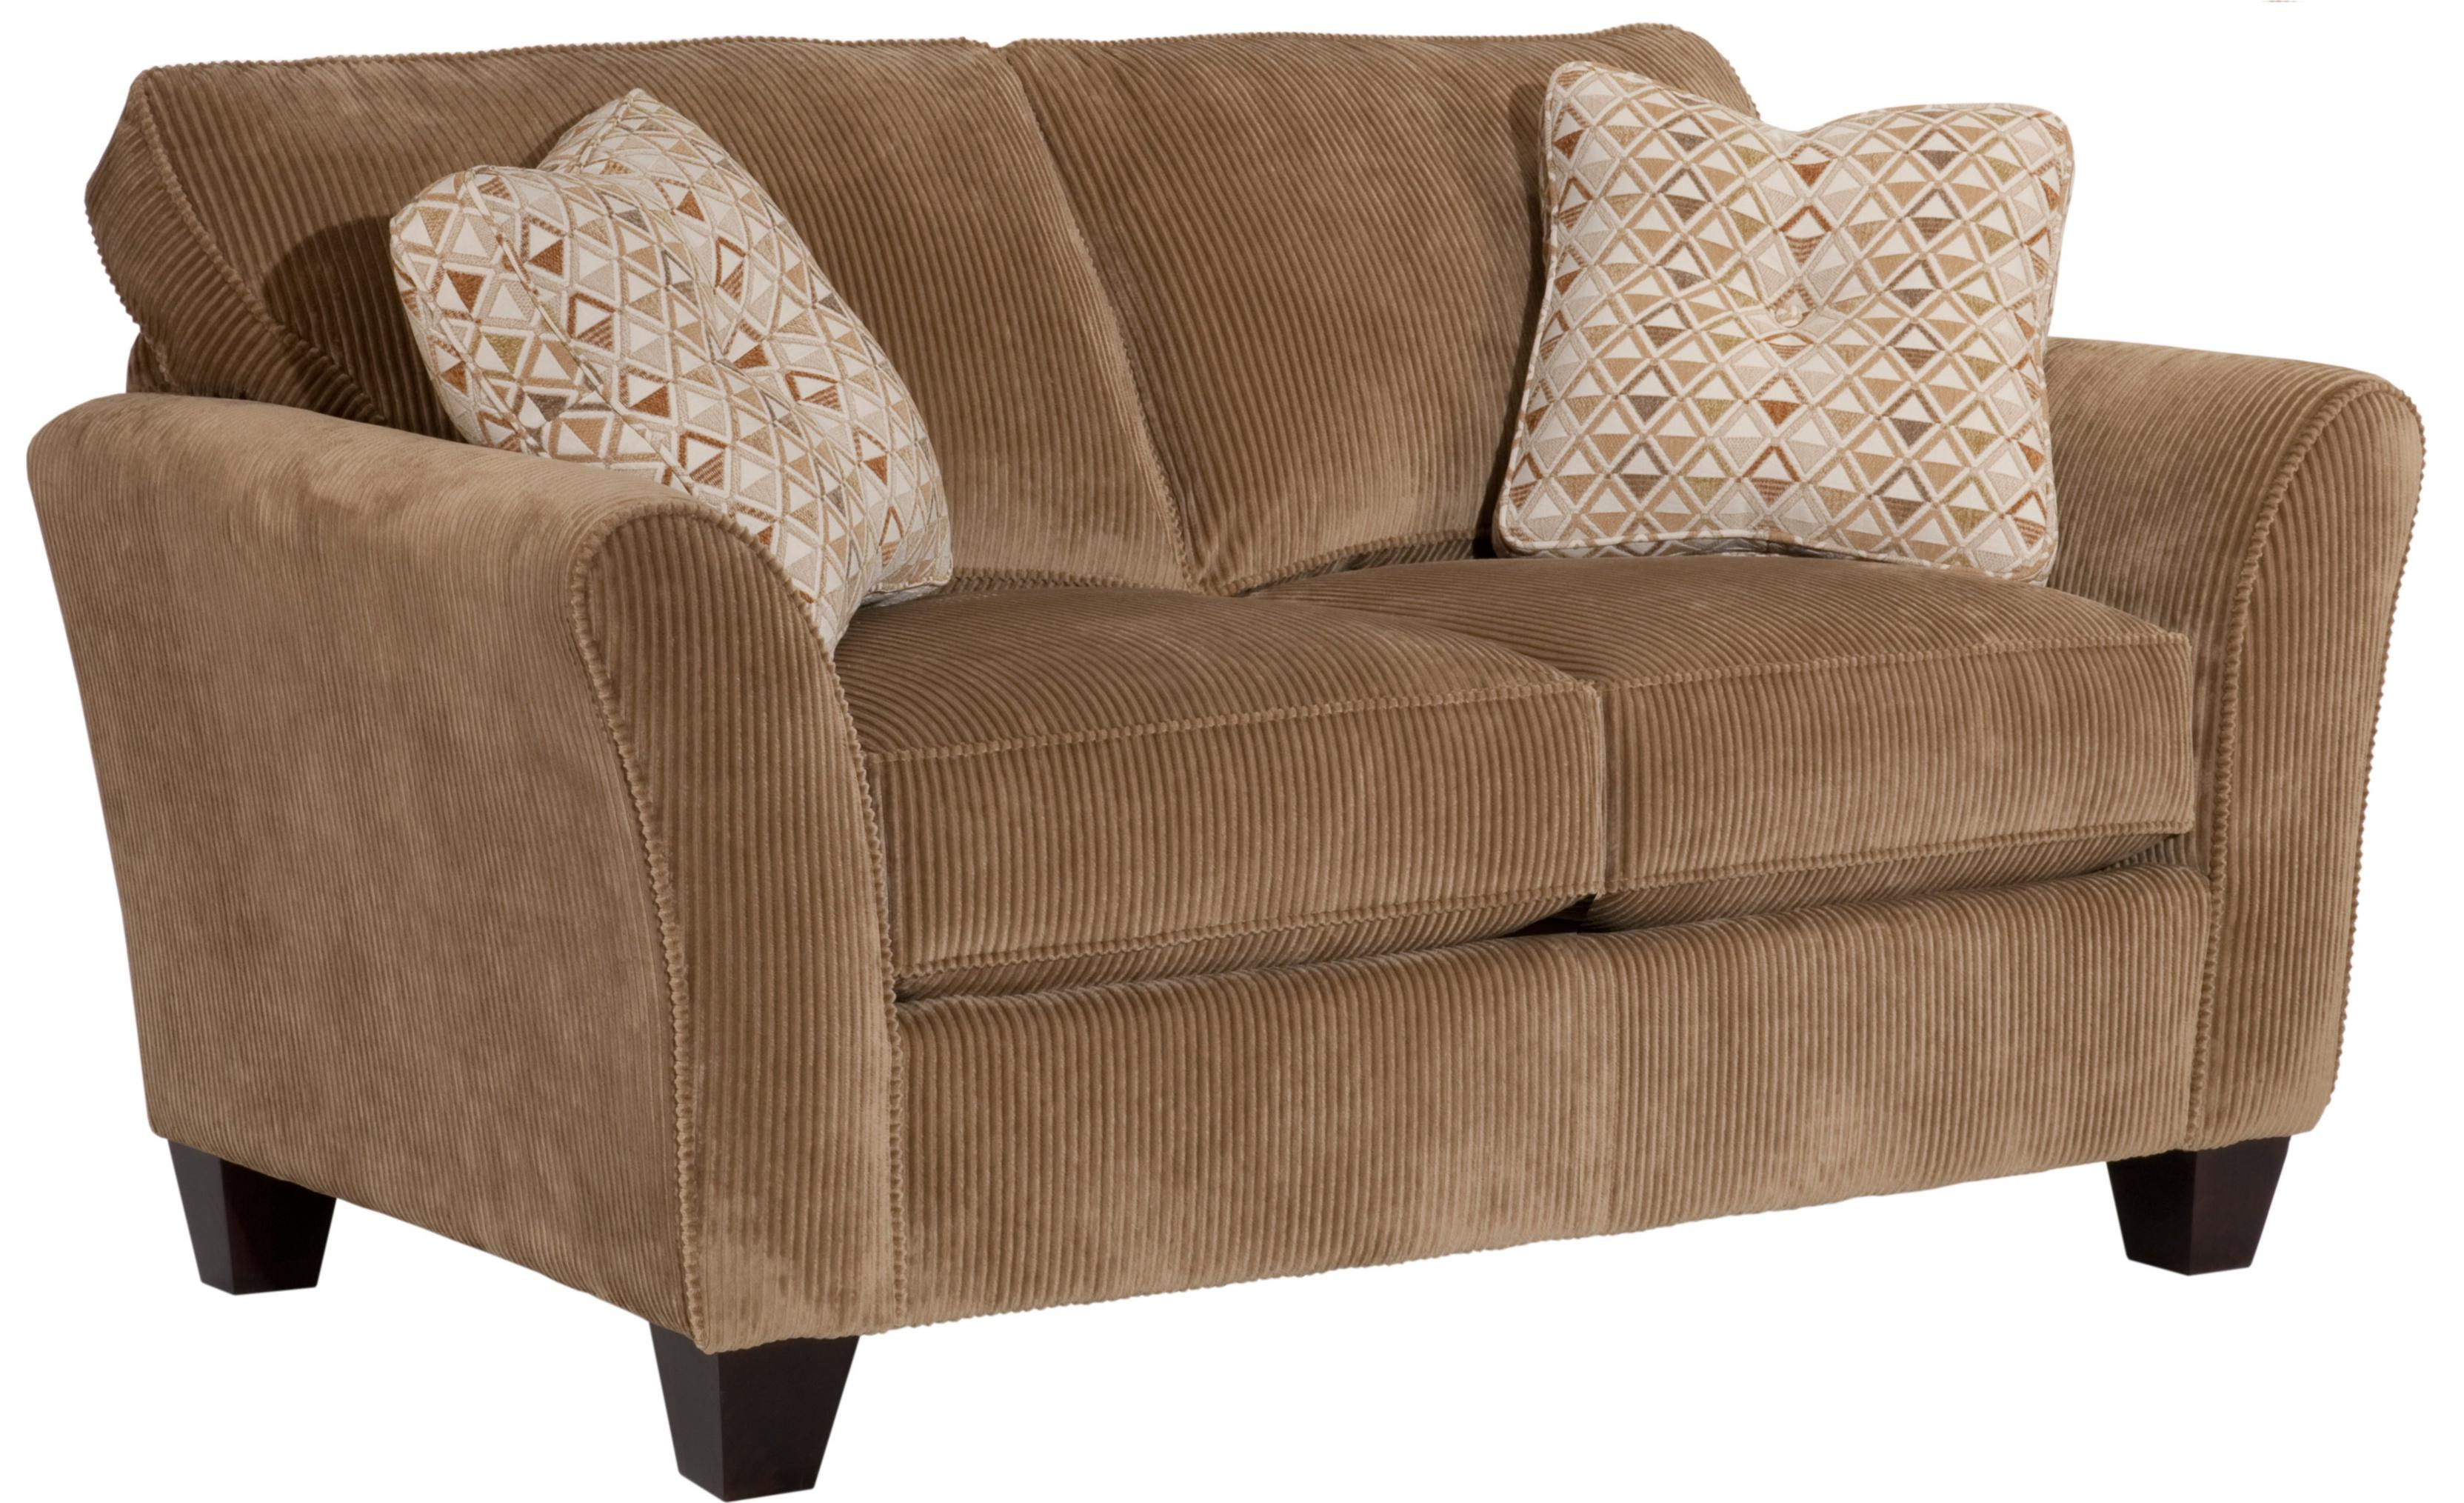 Broyhill Furniture Maddie Contemporary Style Loveseat - Item Number: 6517-1-7973-86